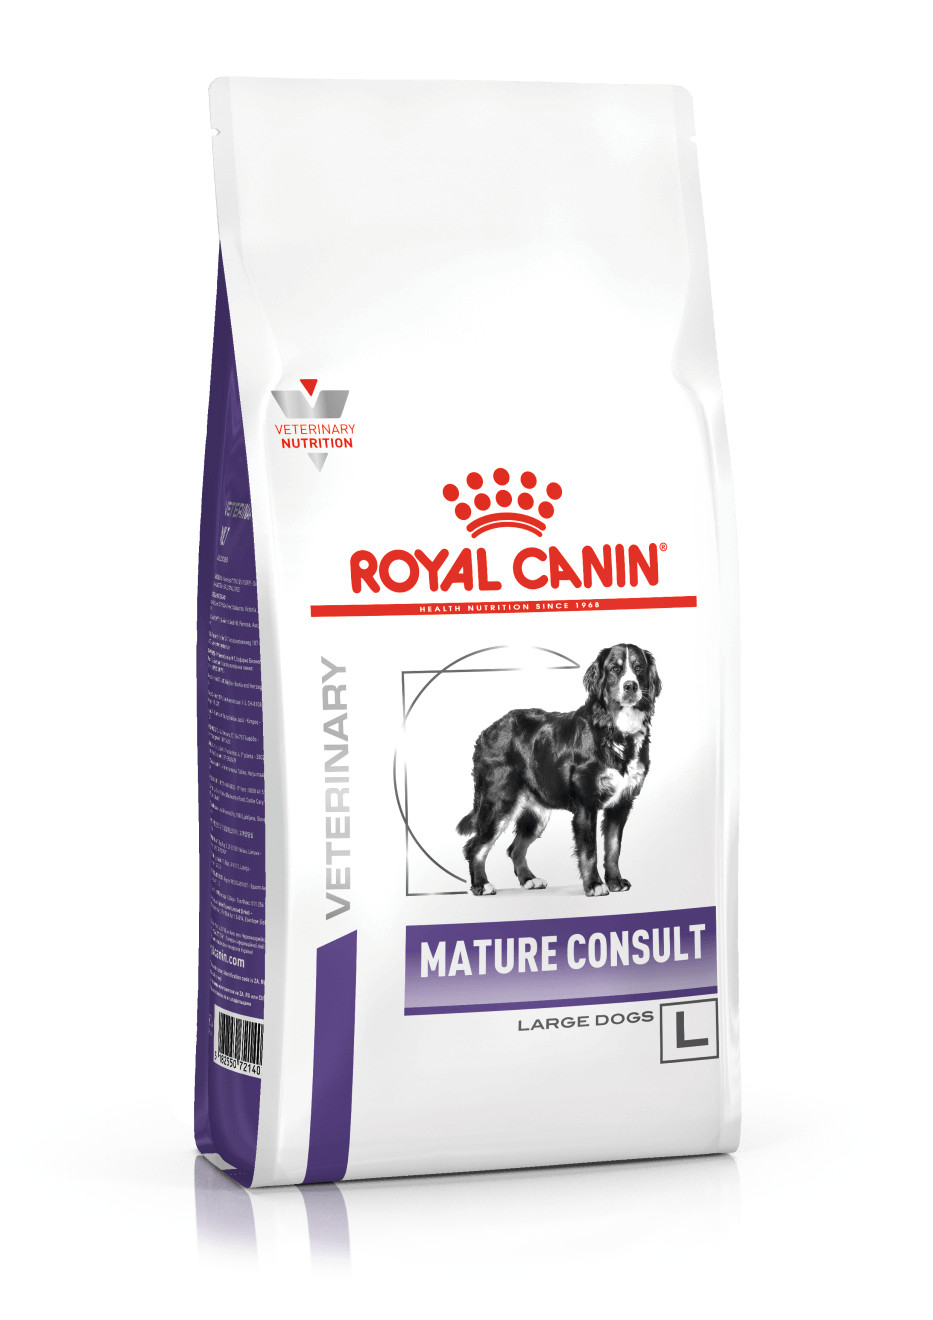 Royal Canin Veterinary Mature Consult Large Dogs hondenvoer